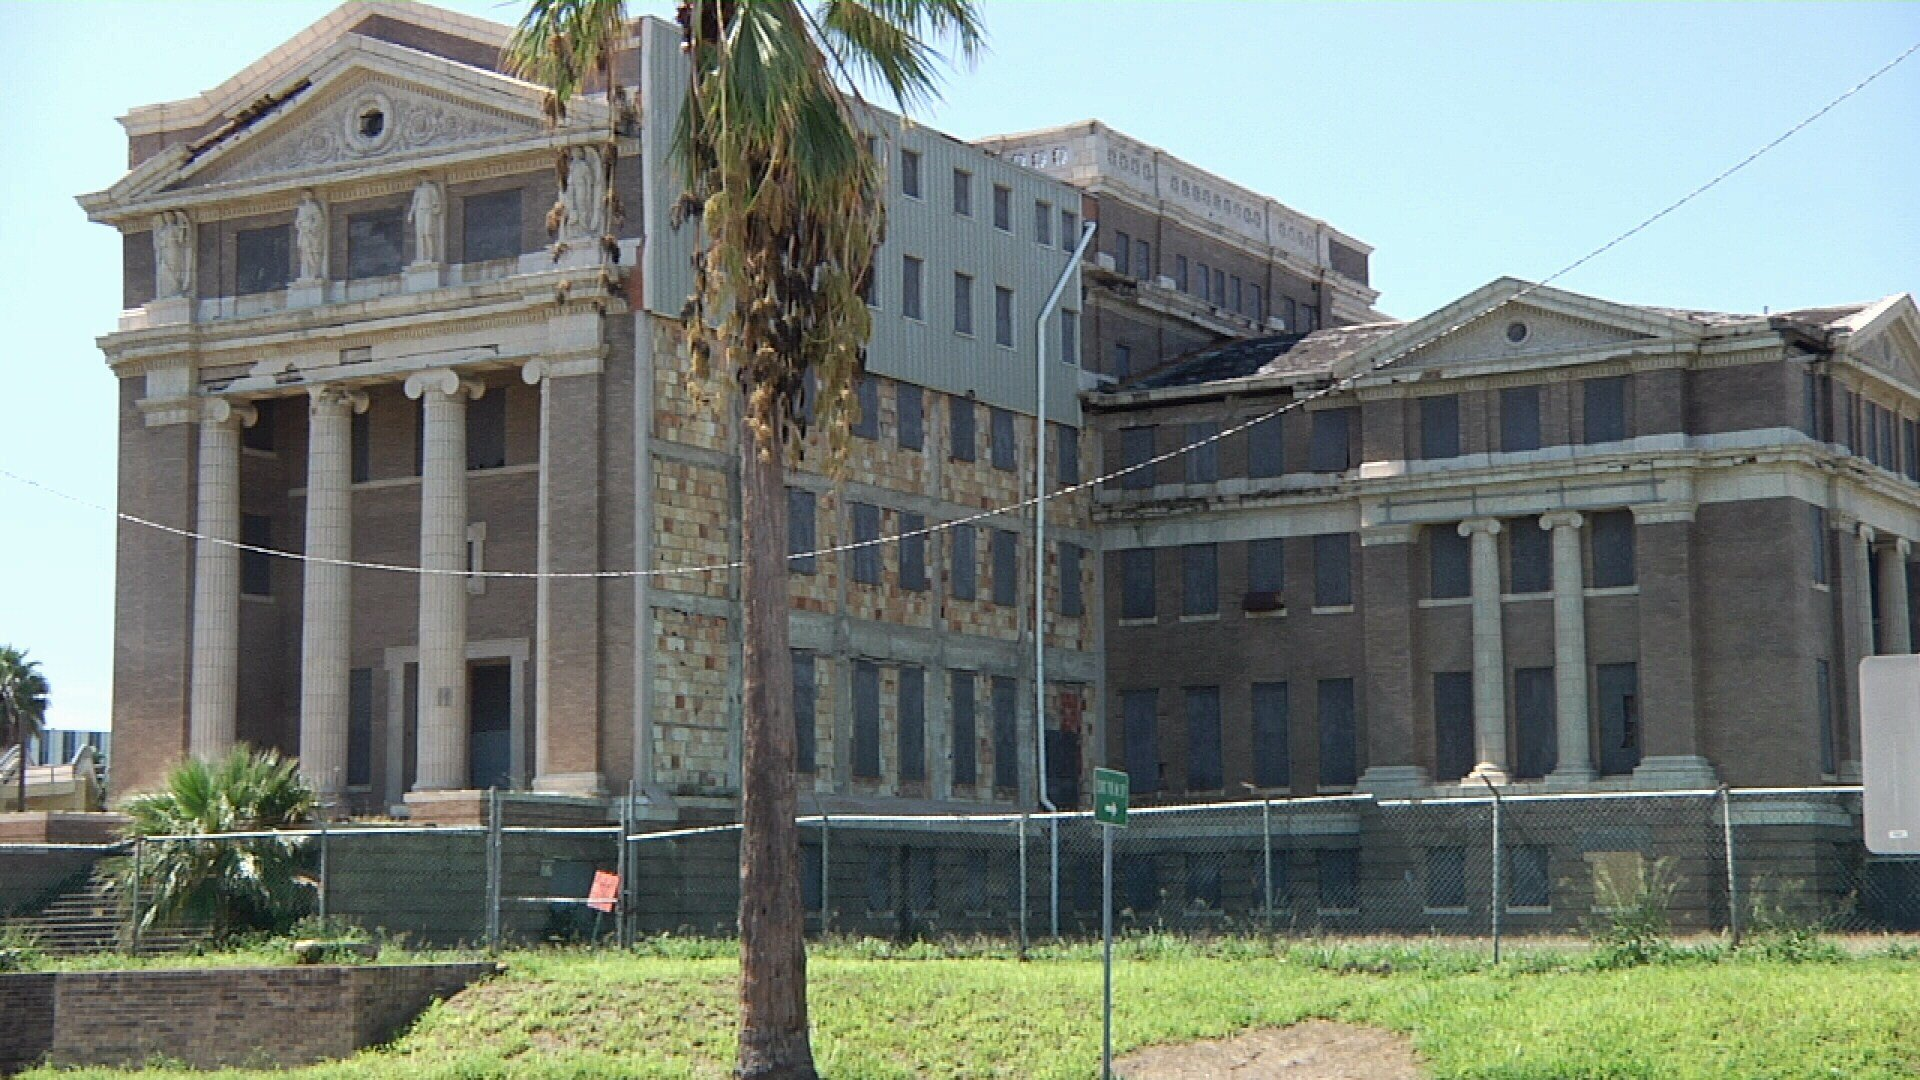 The Texas Historical Commission says the old courthouse could be turned into luxury apartments and make a profit.